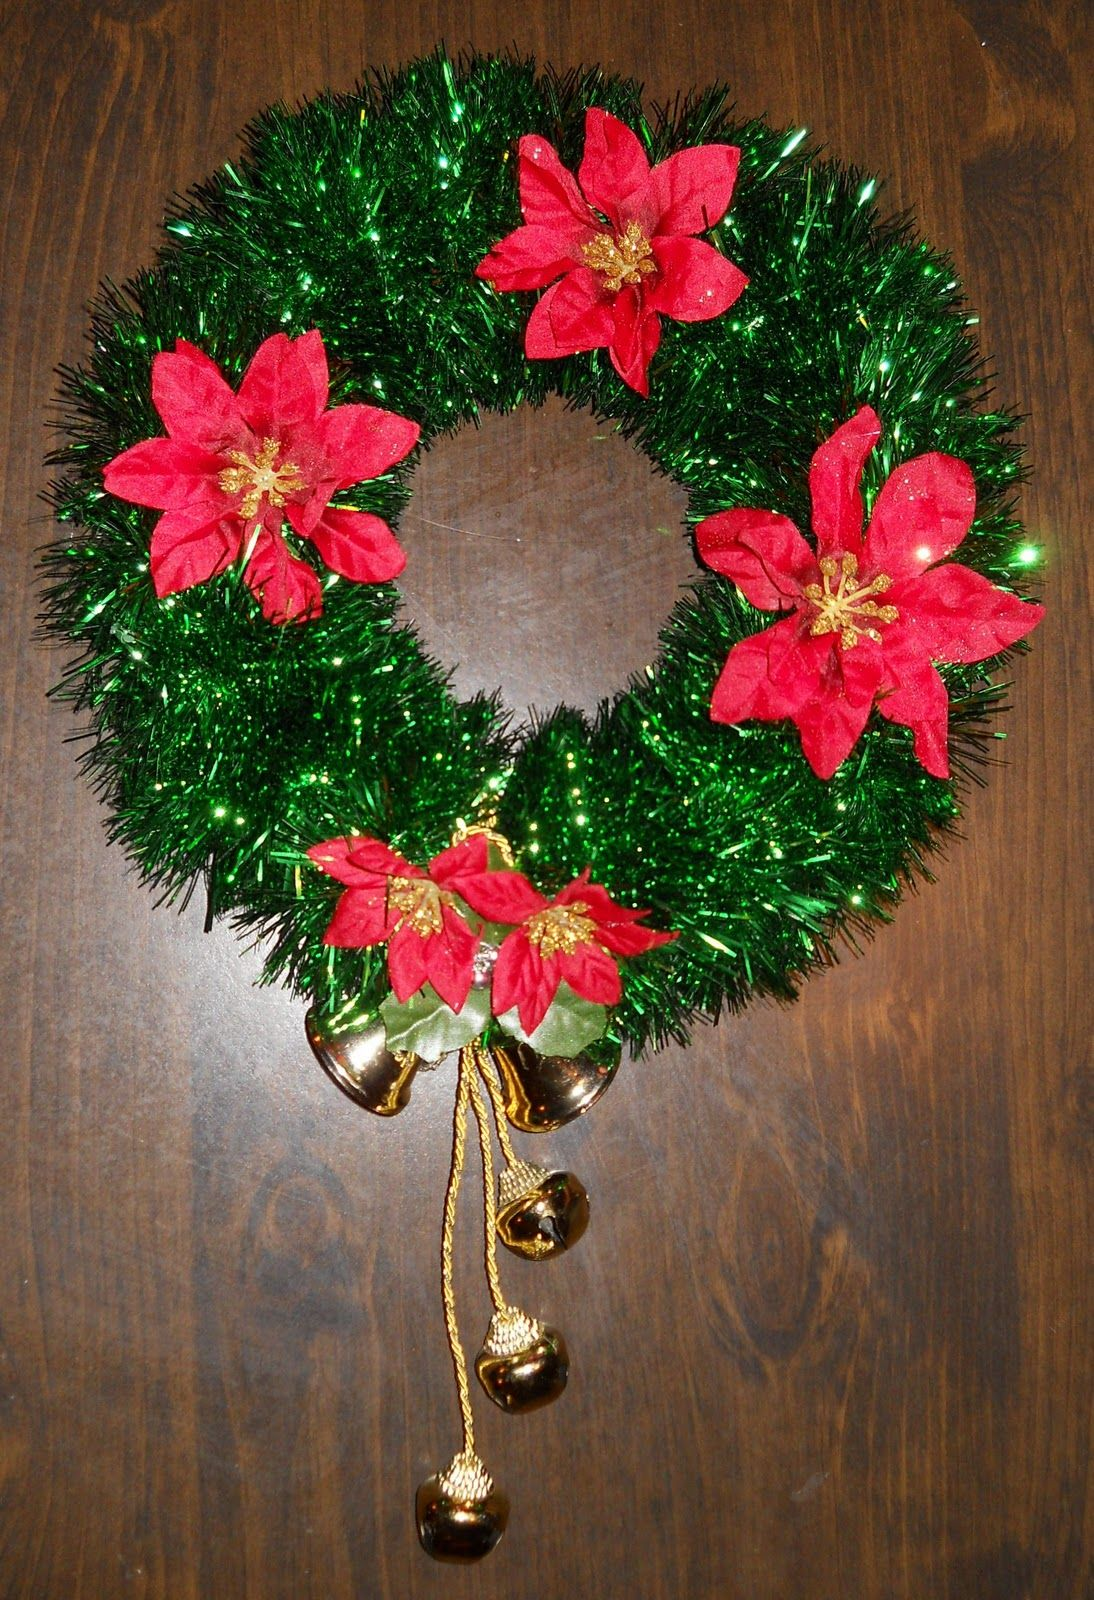 Christmas Arts And Crafts Ideas For Adults Part - 17: Christmas+Arts+and+Crafts+for+Adults | Christmas Art And Craft